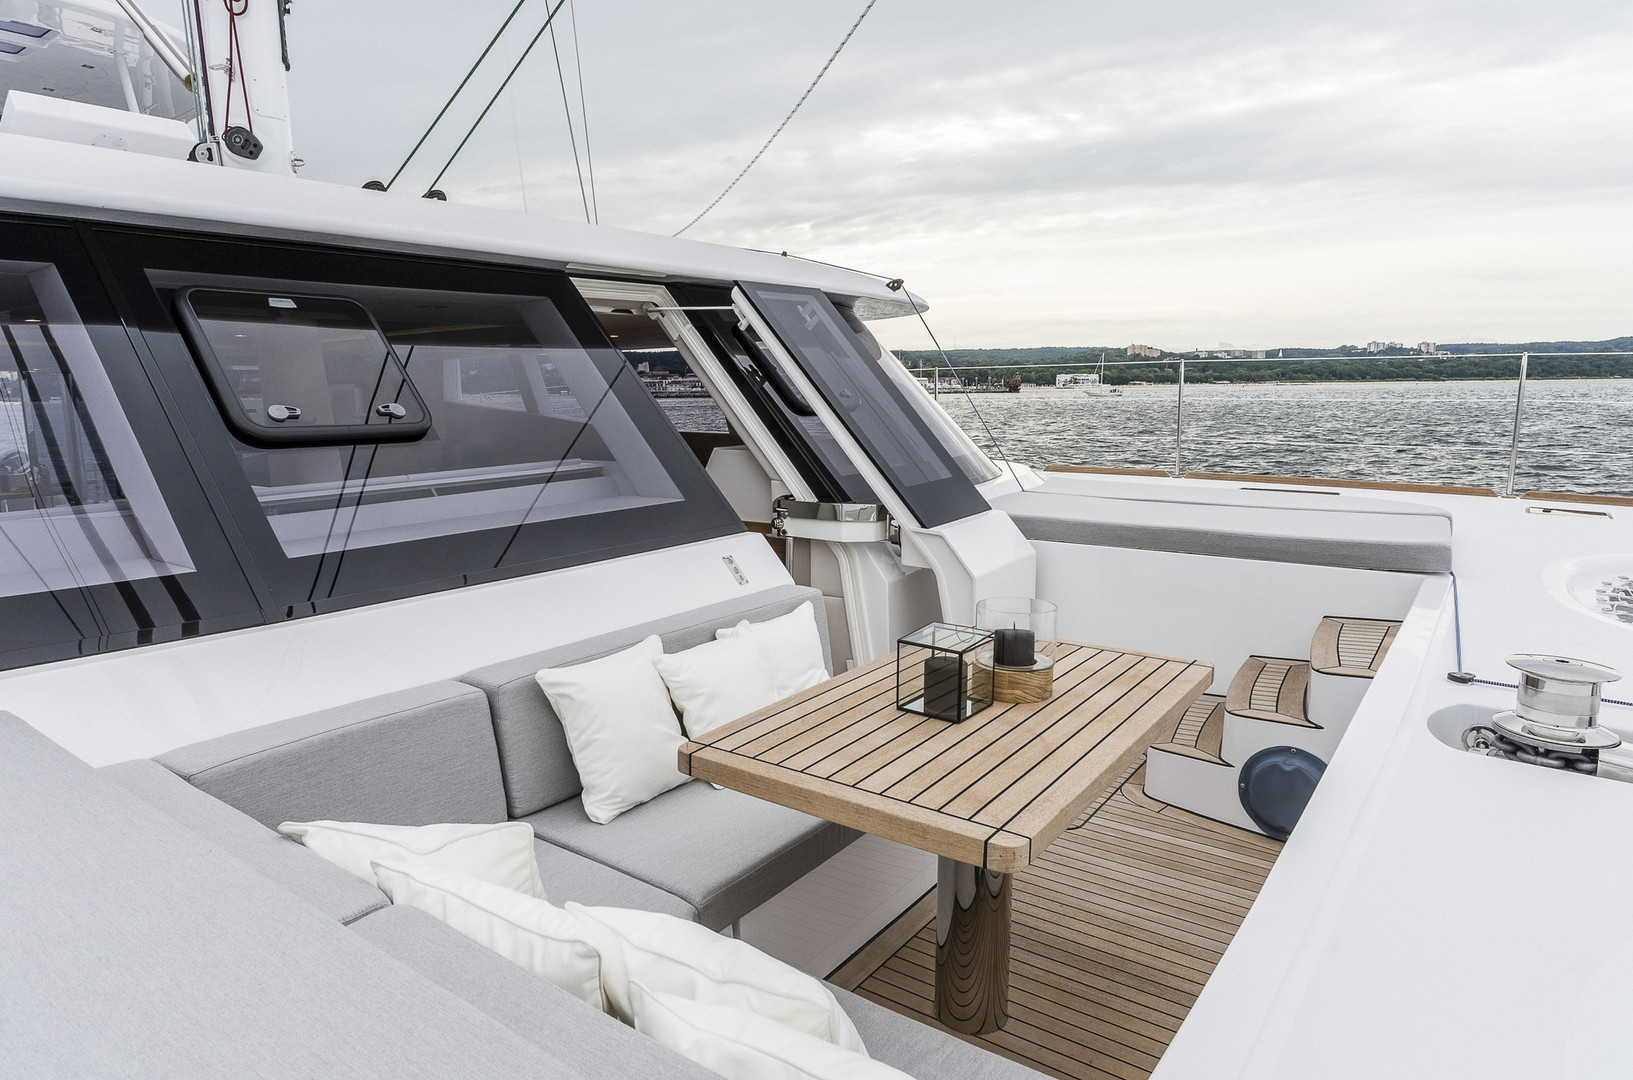 Yacht CALMAO - unique foredeck seating, ideal for sundowners